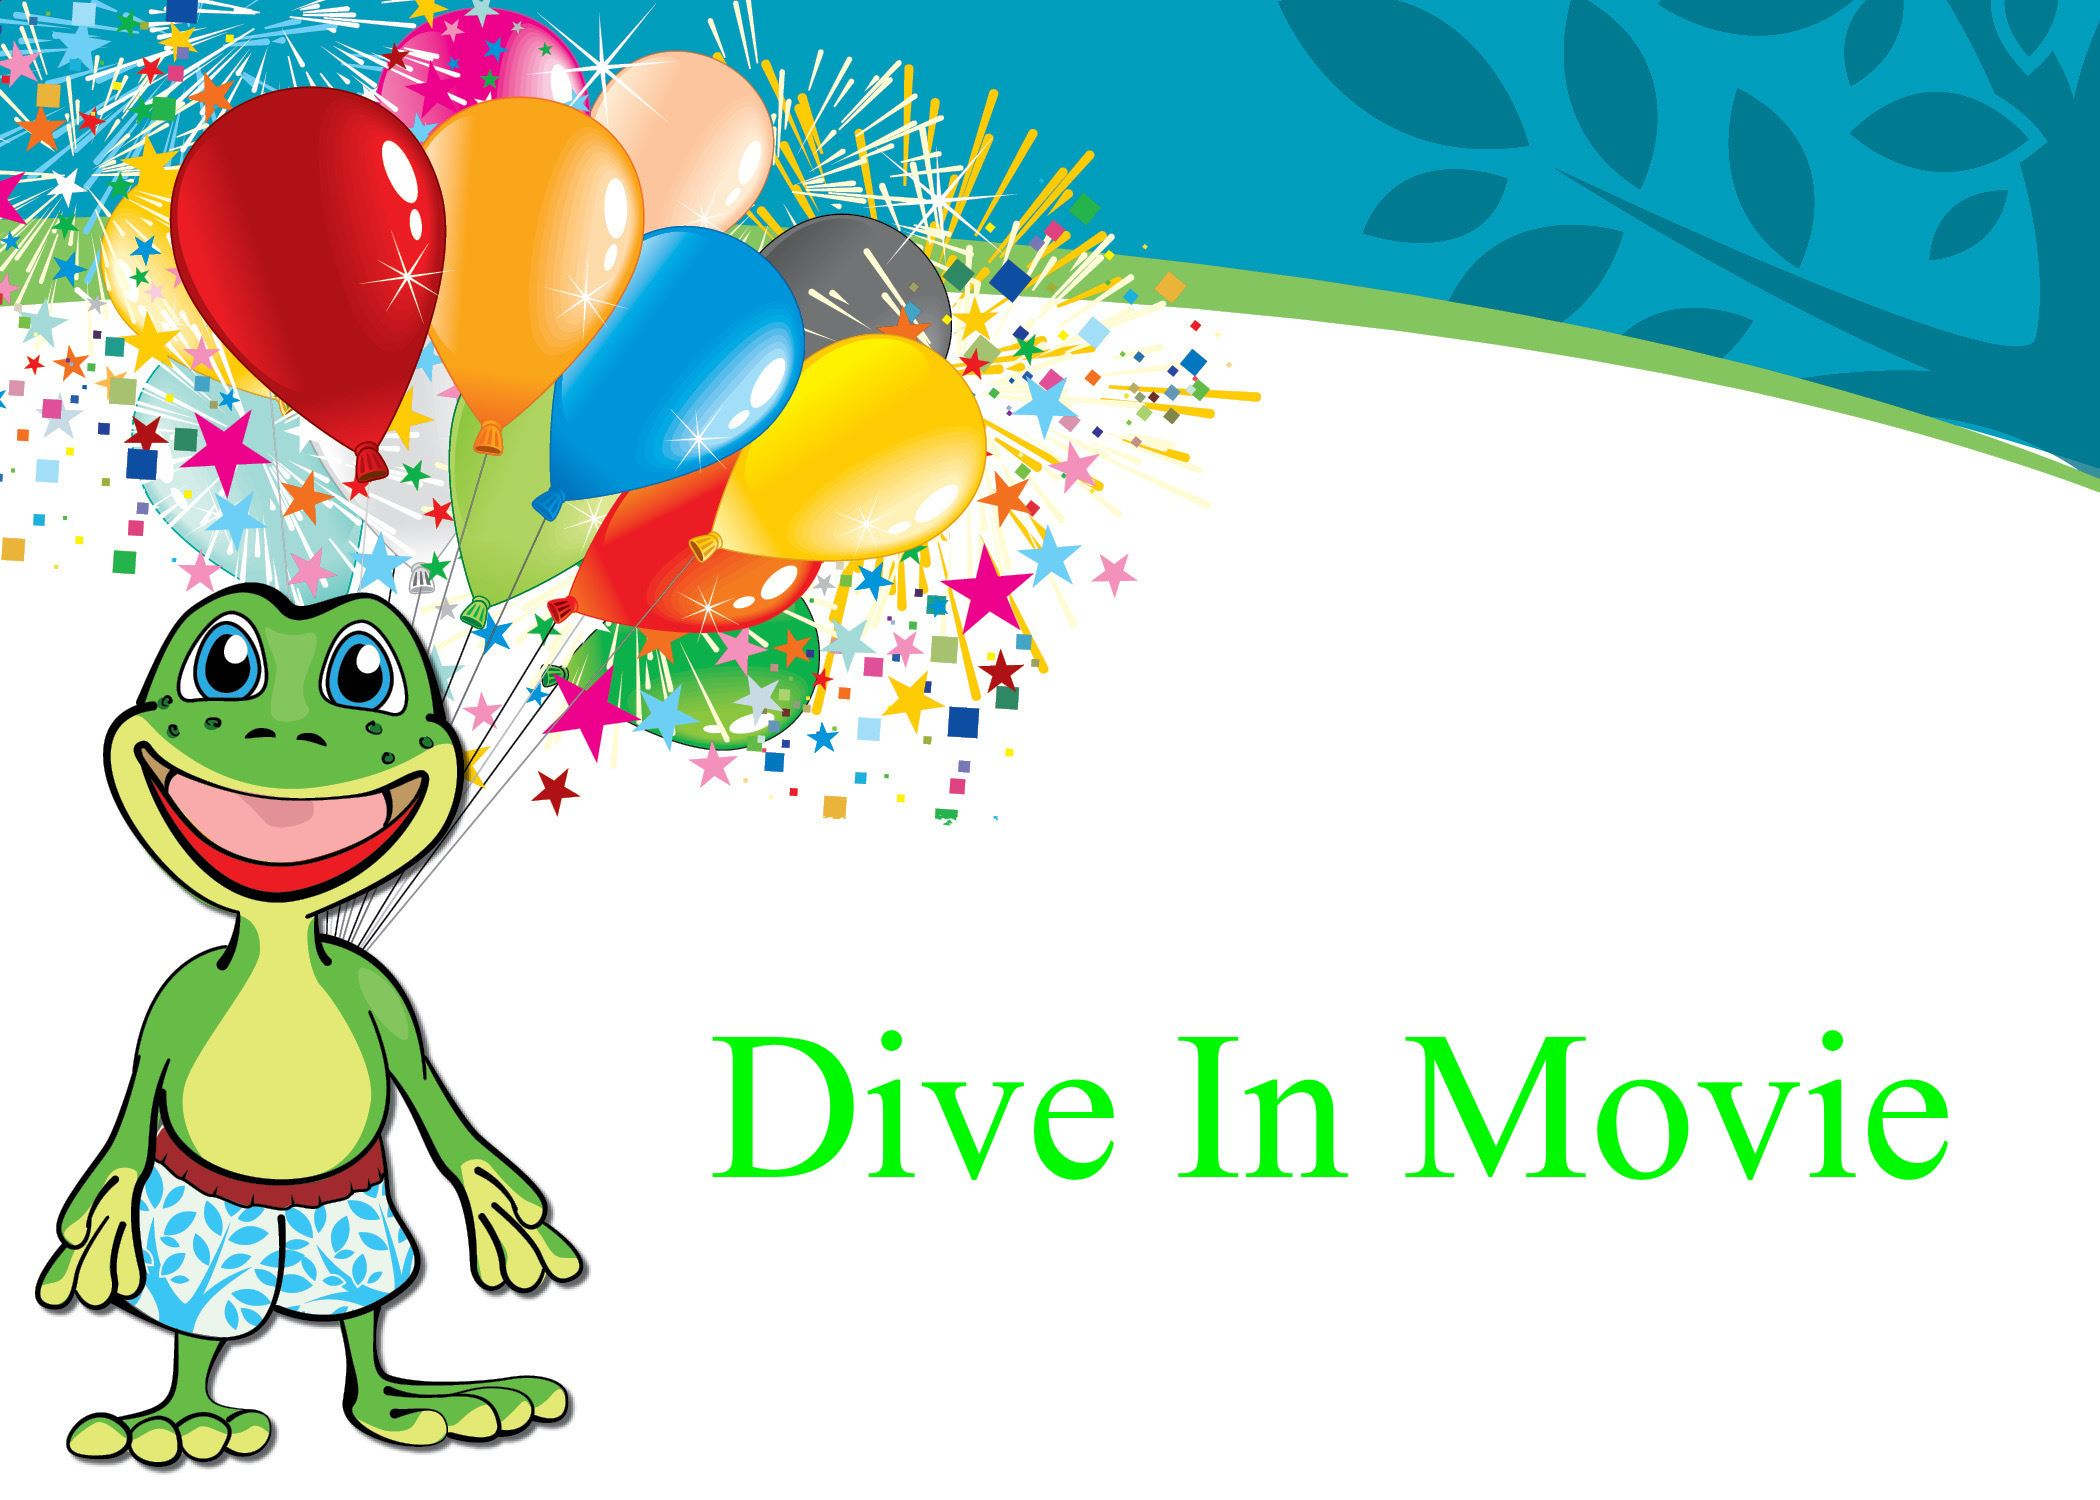 Dive in Movie